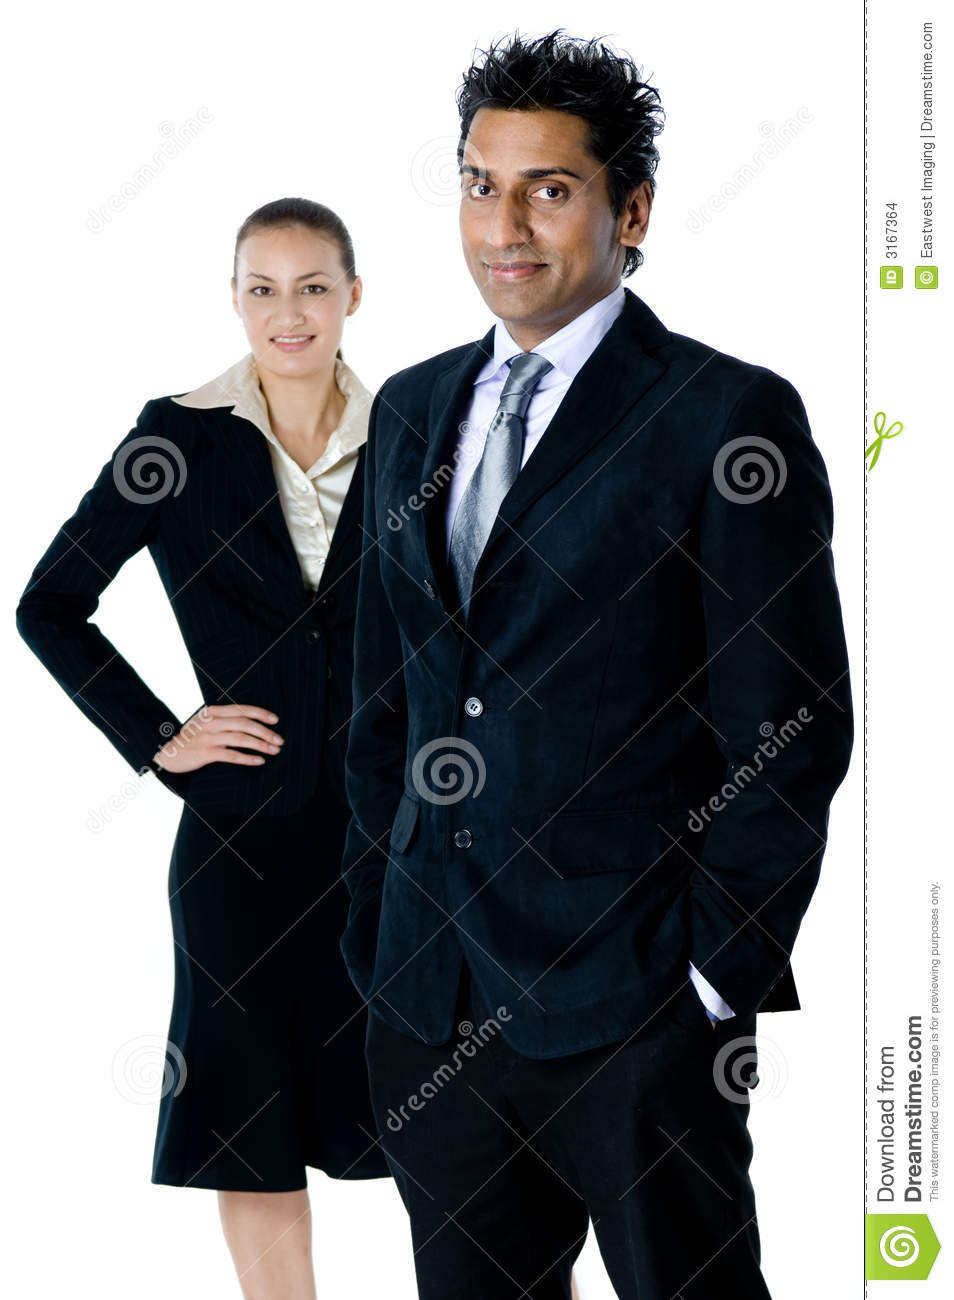 business people stock photo image of businesswoman woman 3167364